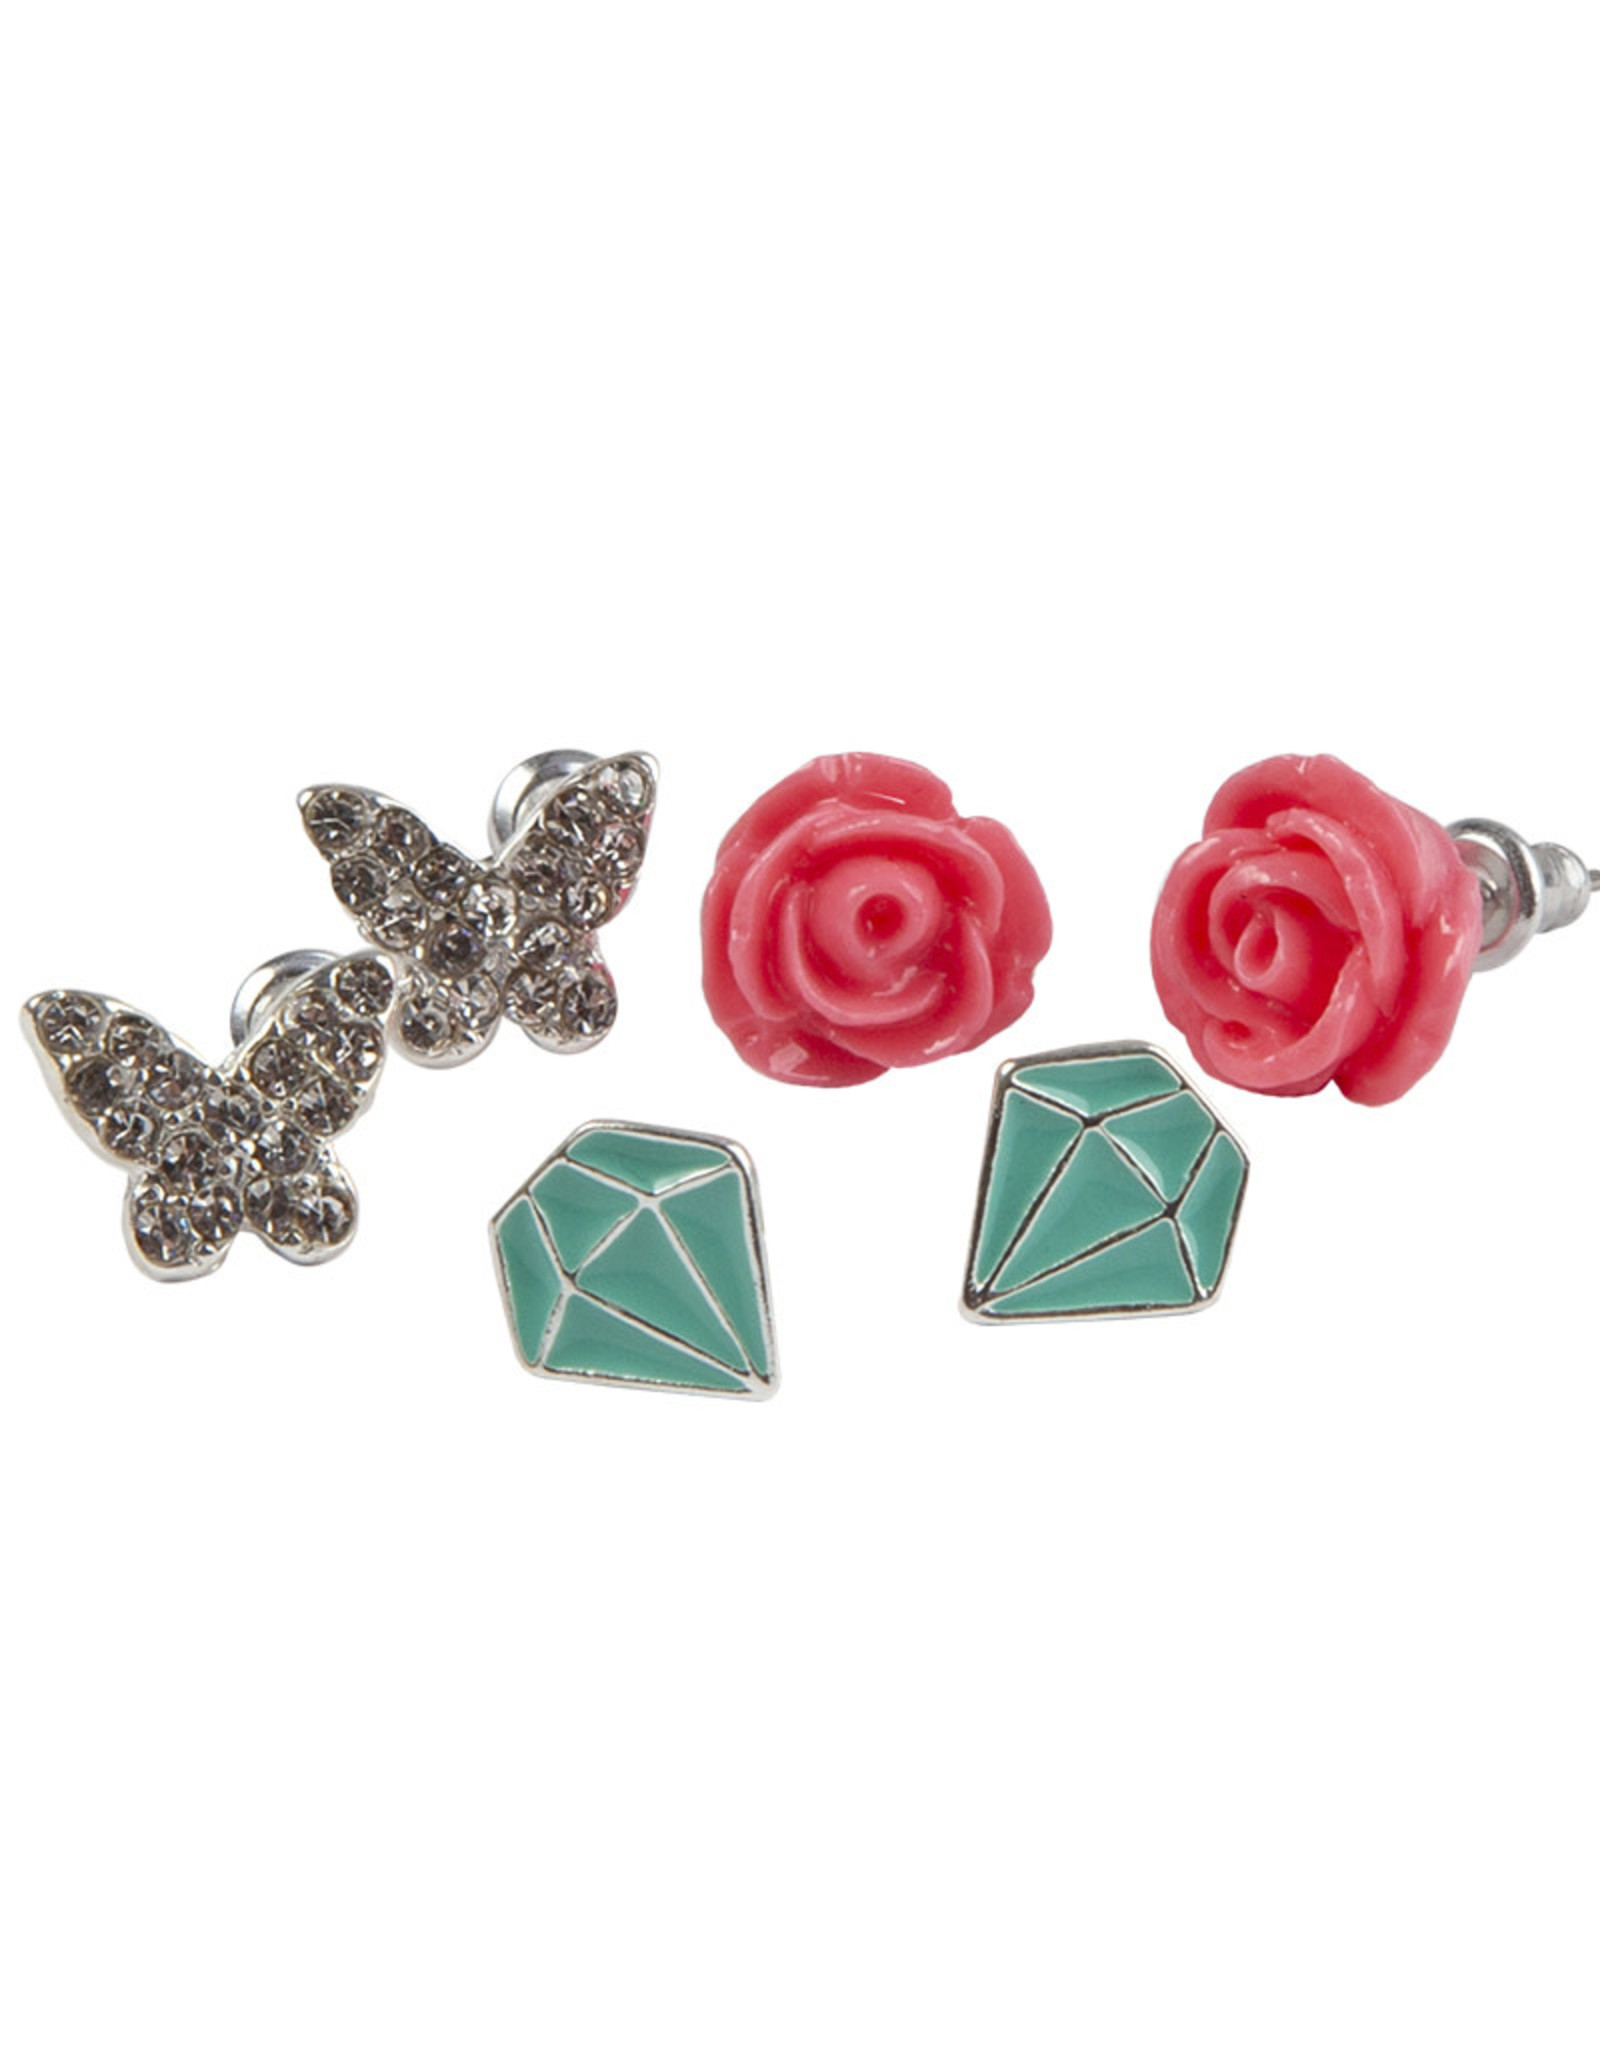 Creative Education Boutique Rose Studded Earrings, 3 Sets